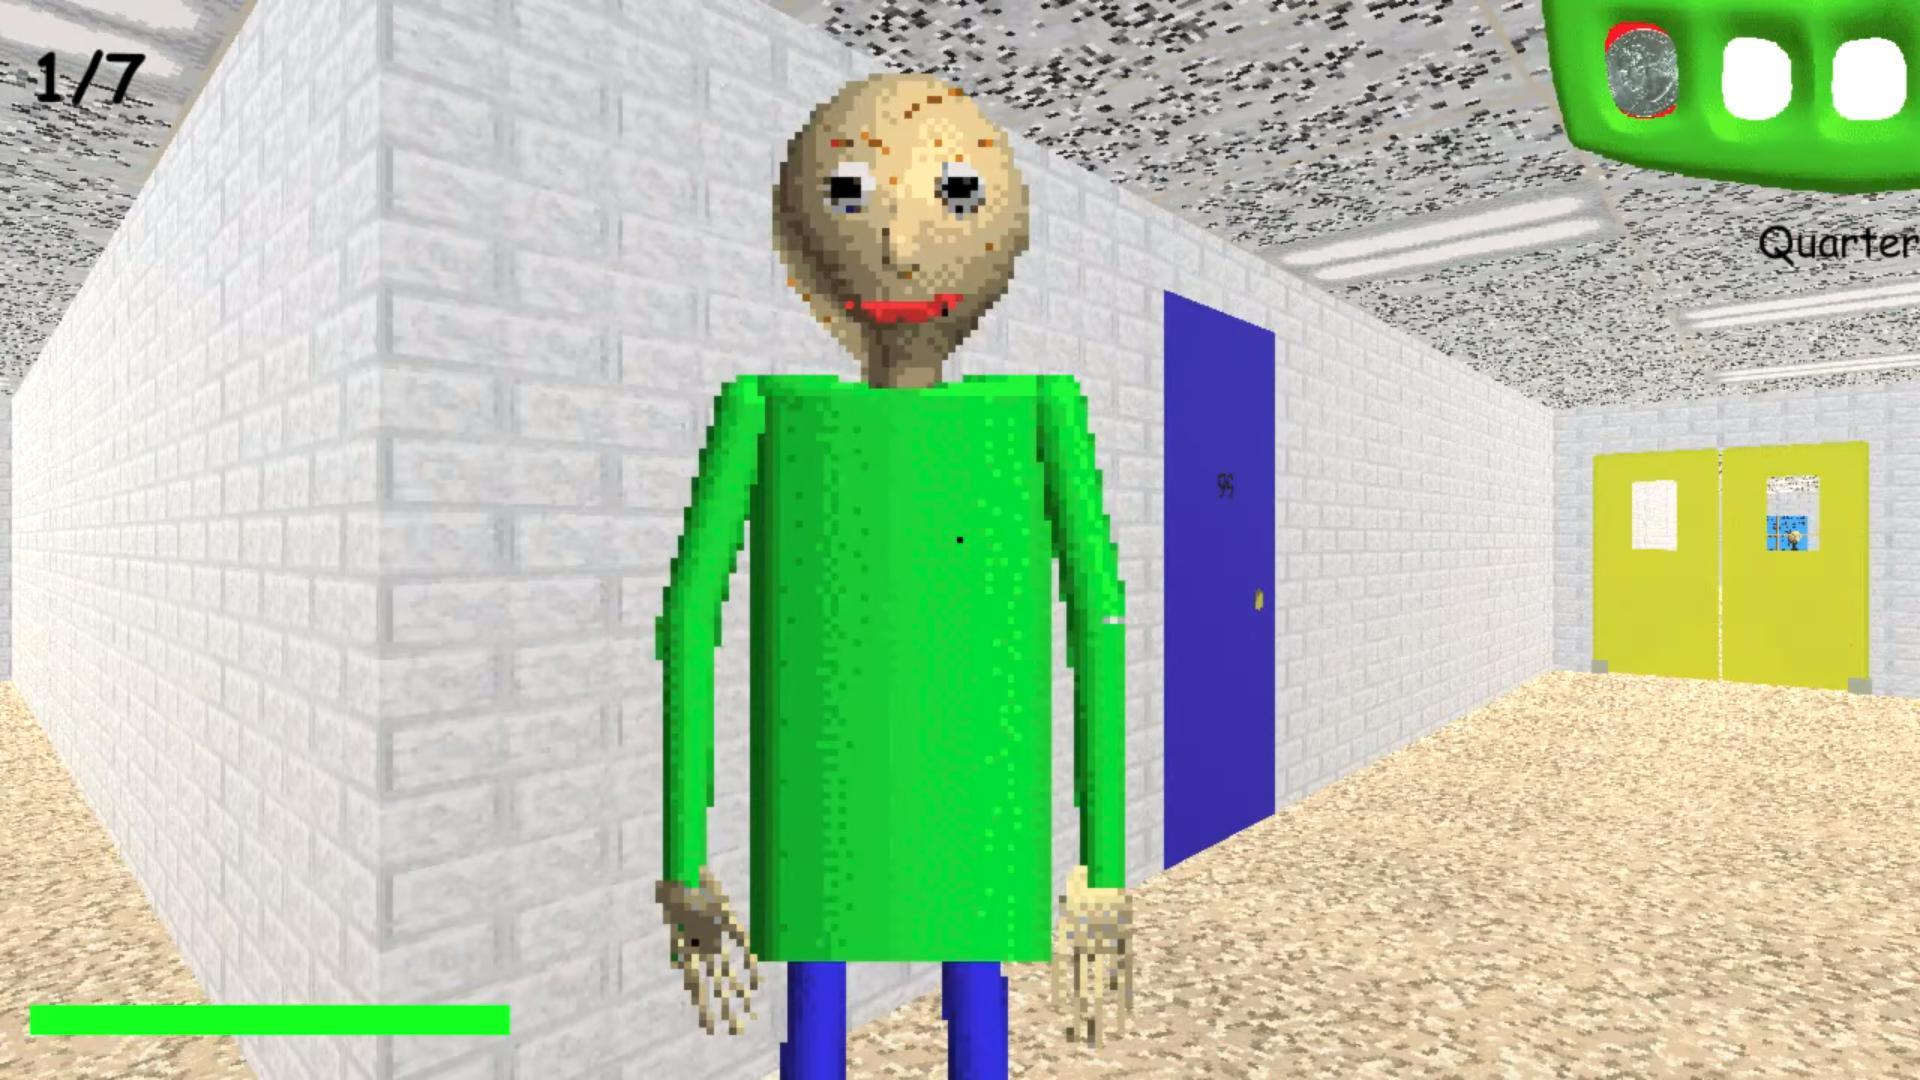 baldis basics in education and learning download mega